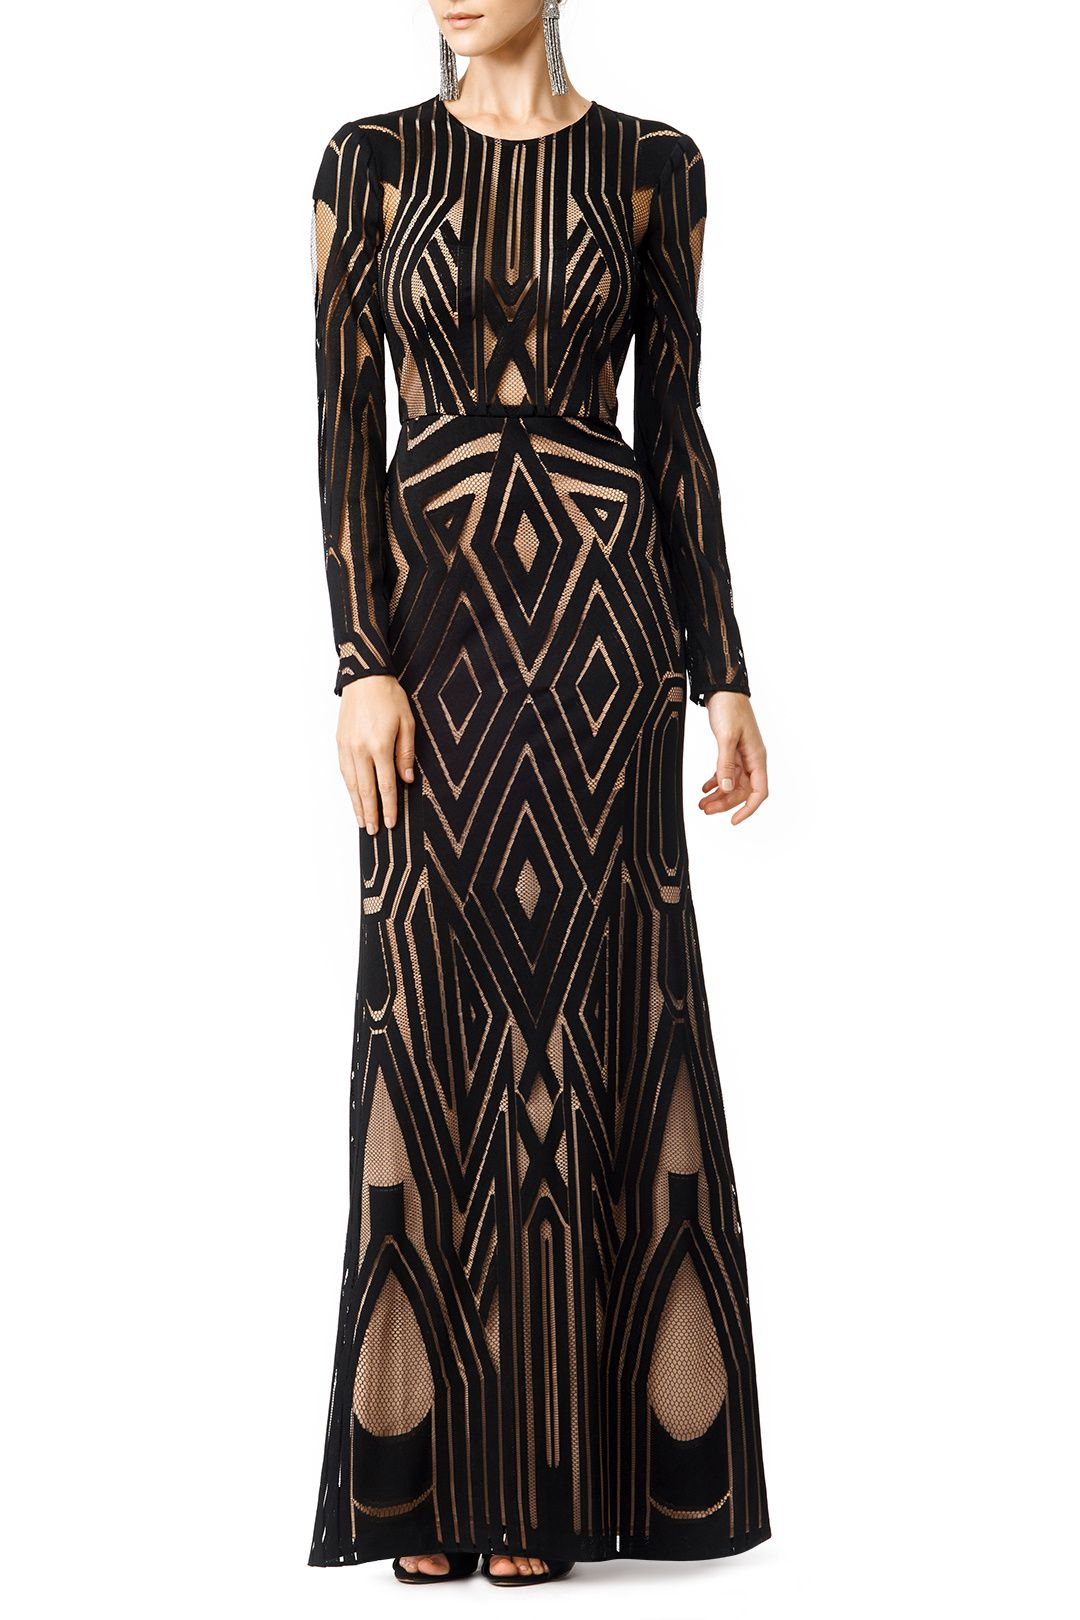 Rent Chakra Gown by BCBGMAXAZRIA for $85 only at Rent the Runway ...